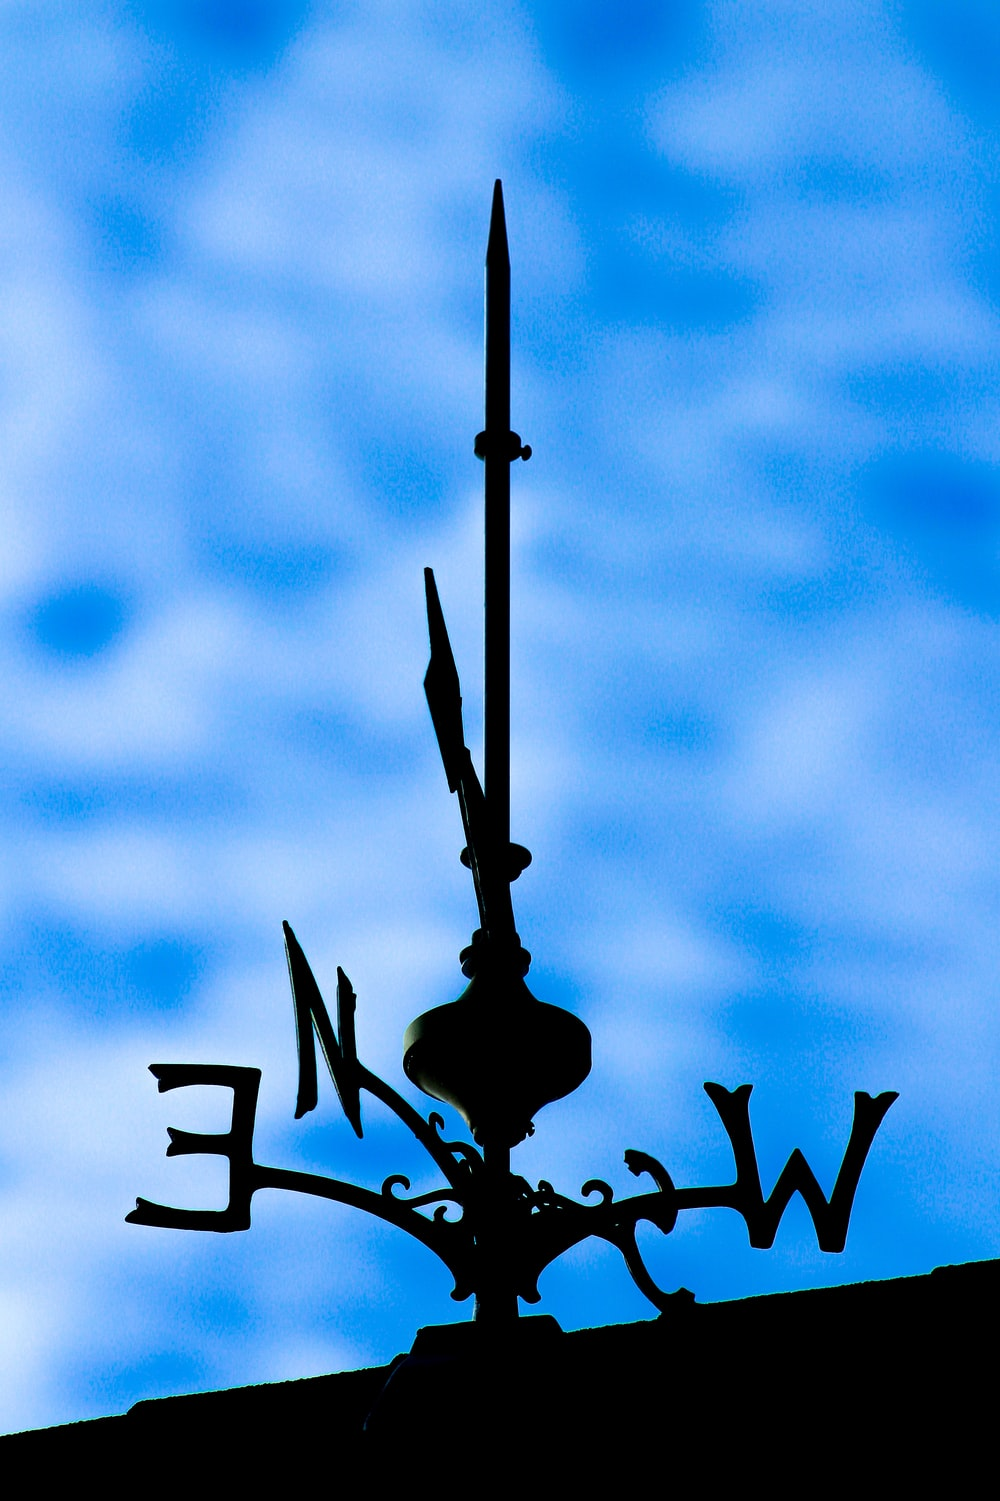 black metal lamp post under blue sky